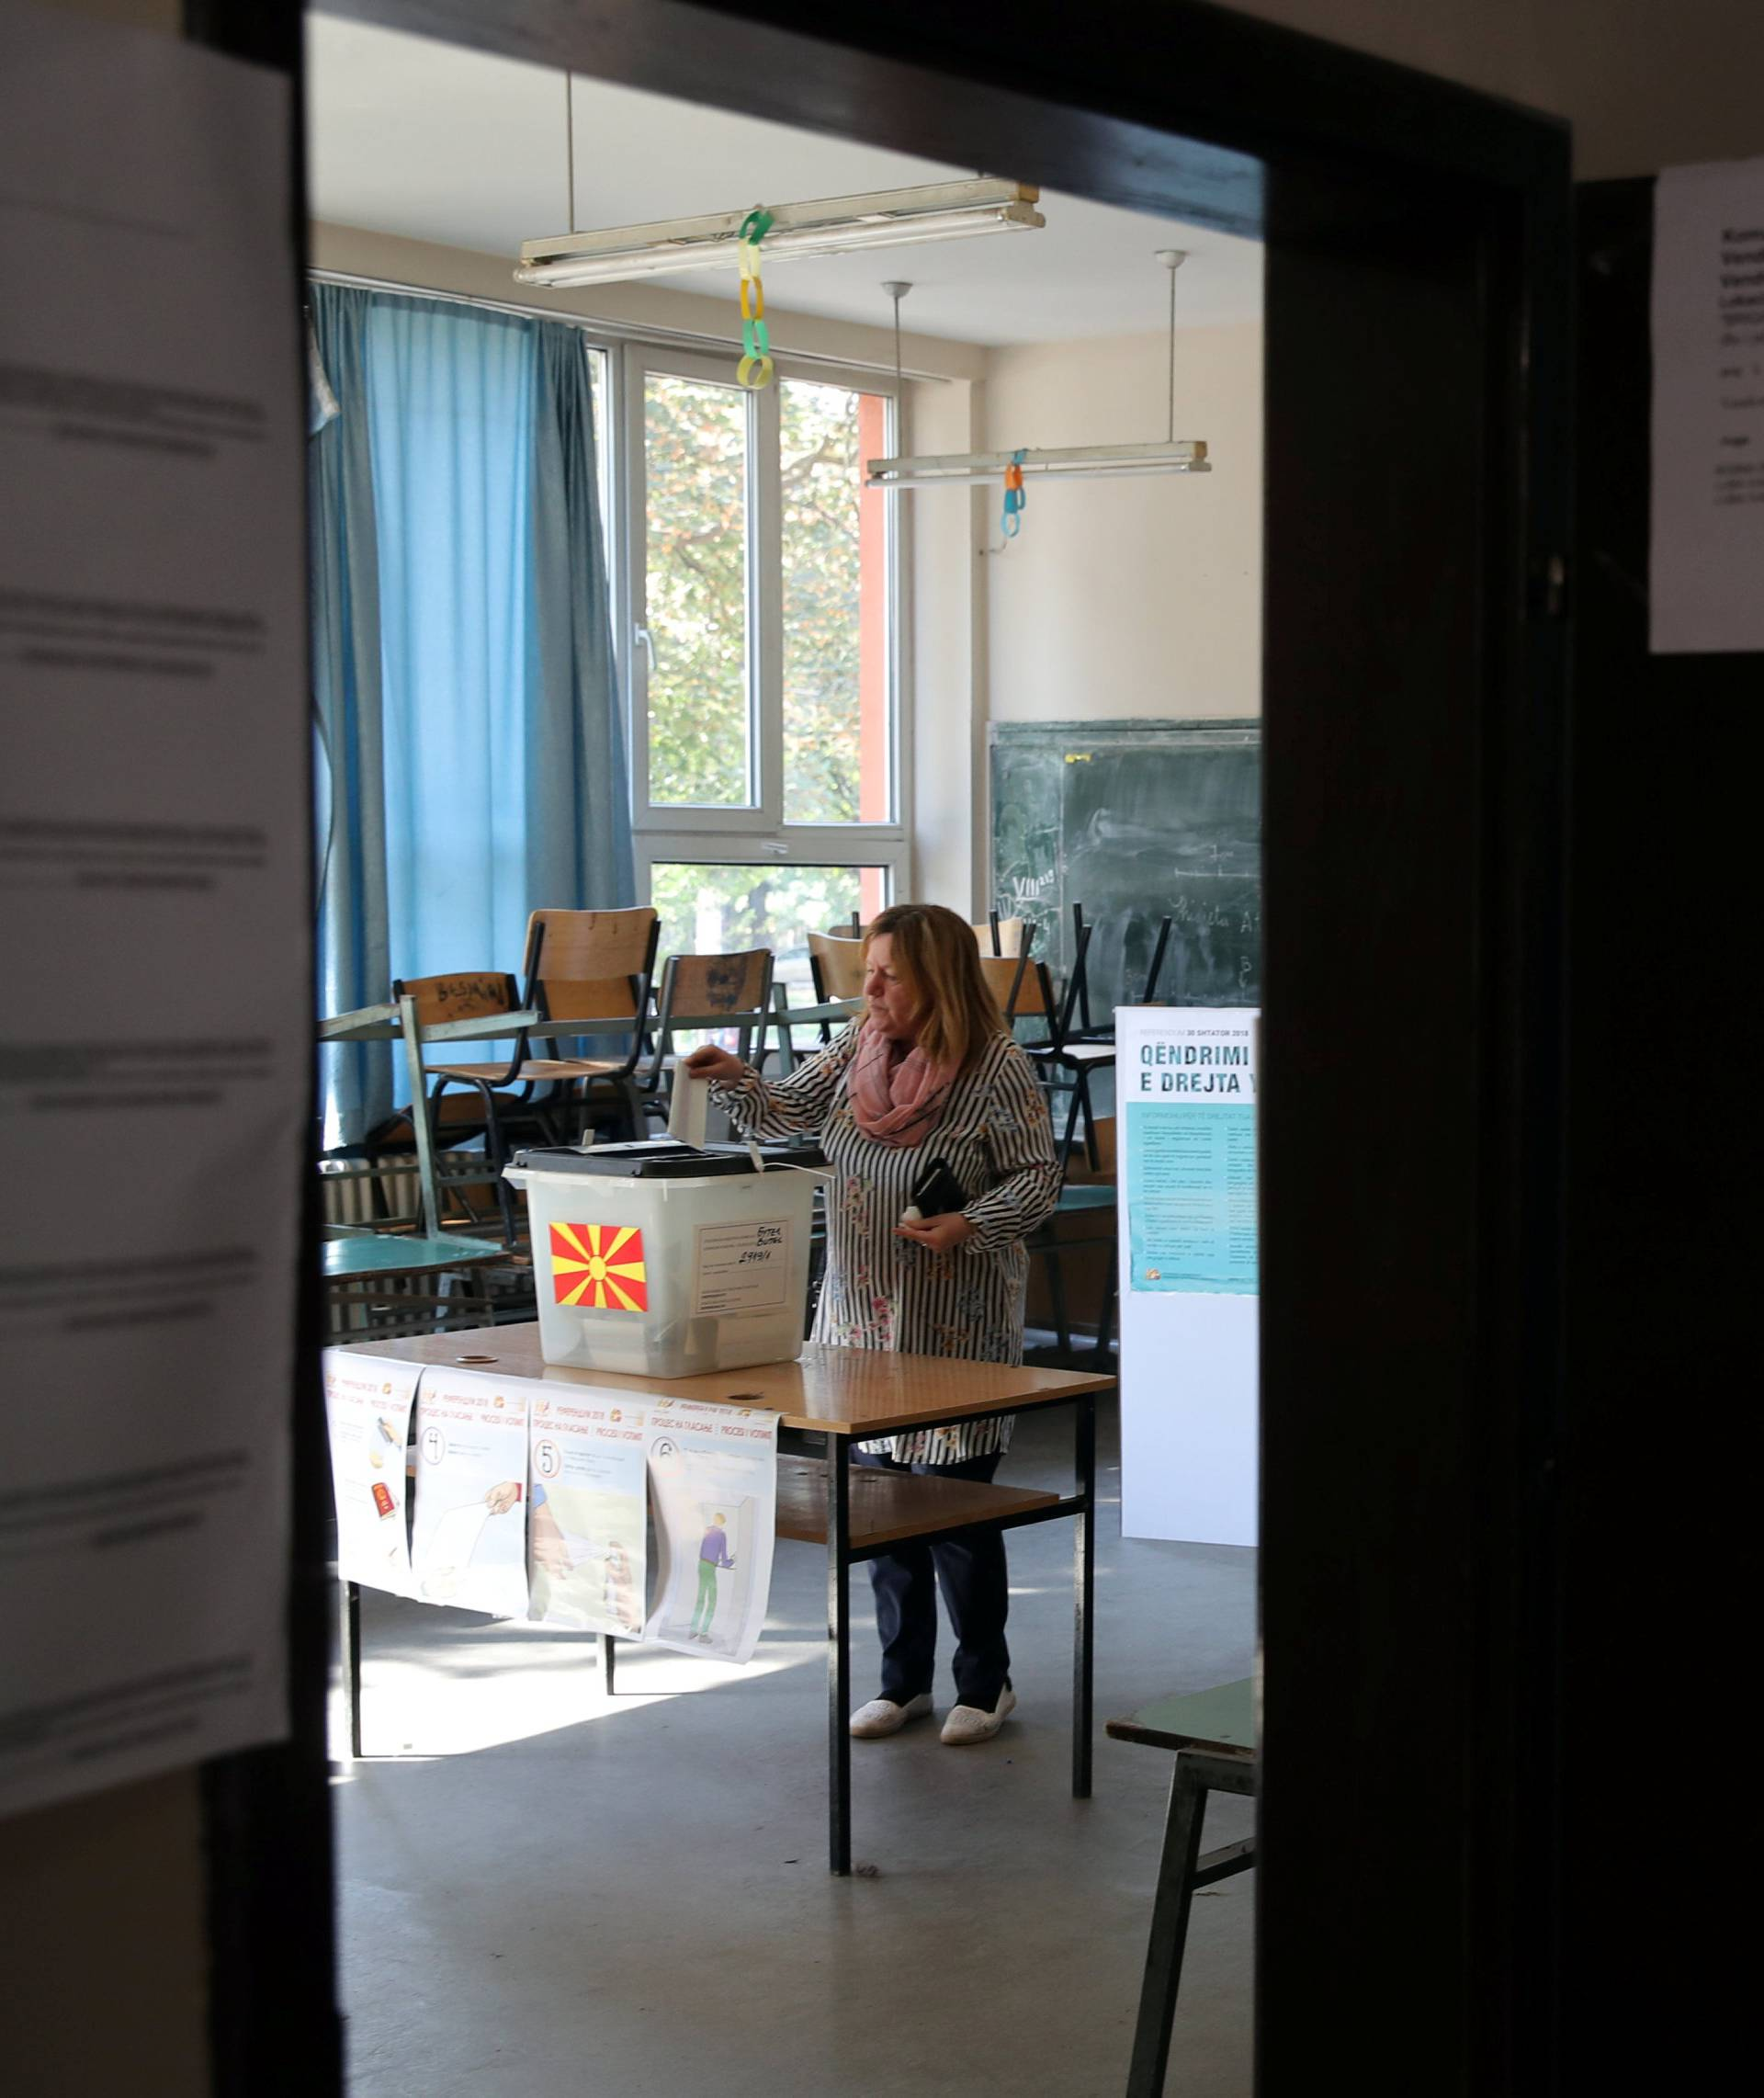 A woman casts her ballot for the referendum in Macedonia on changing the country's name that would open the way for it to join NATO and the European Union in Skopje